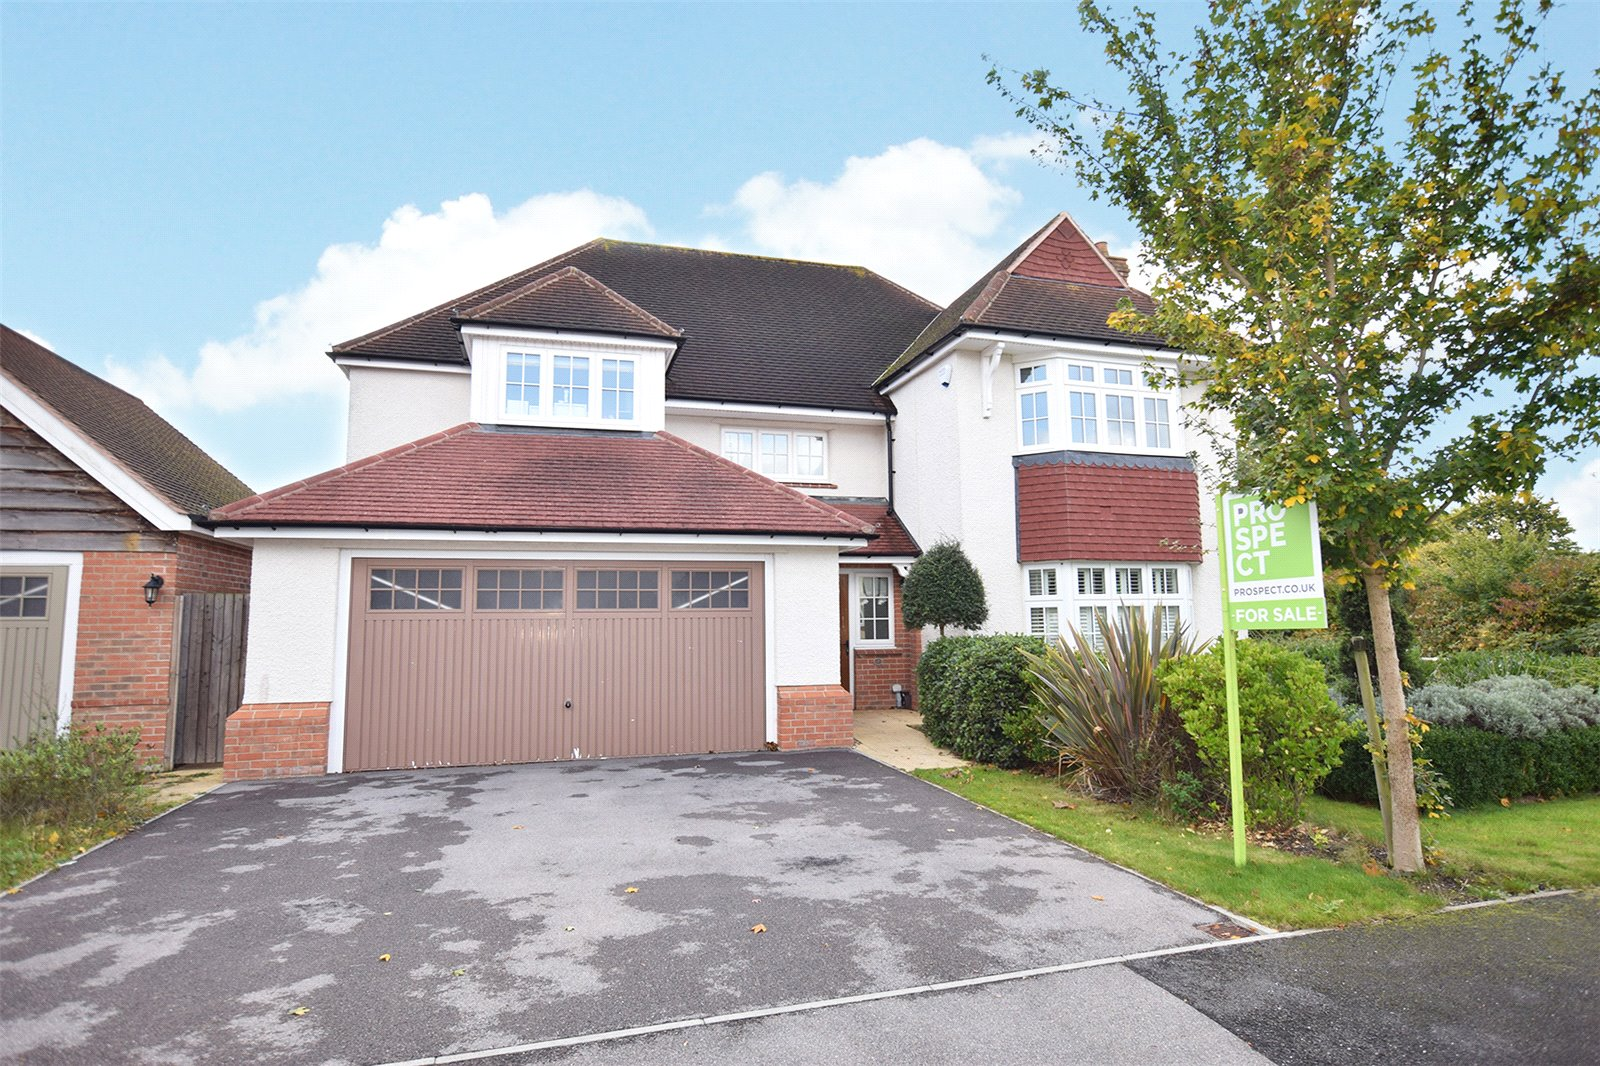 4 Bedrooms Detached House for sale in Swift Fields, Jennett's Park, Bracknell, Berkshire, RG12